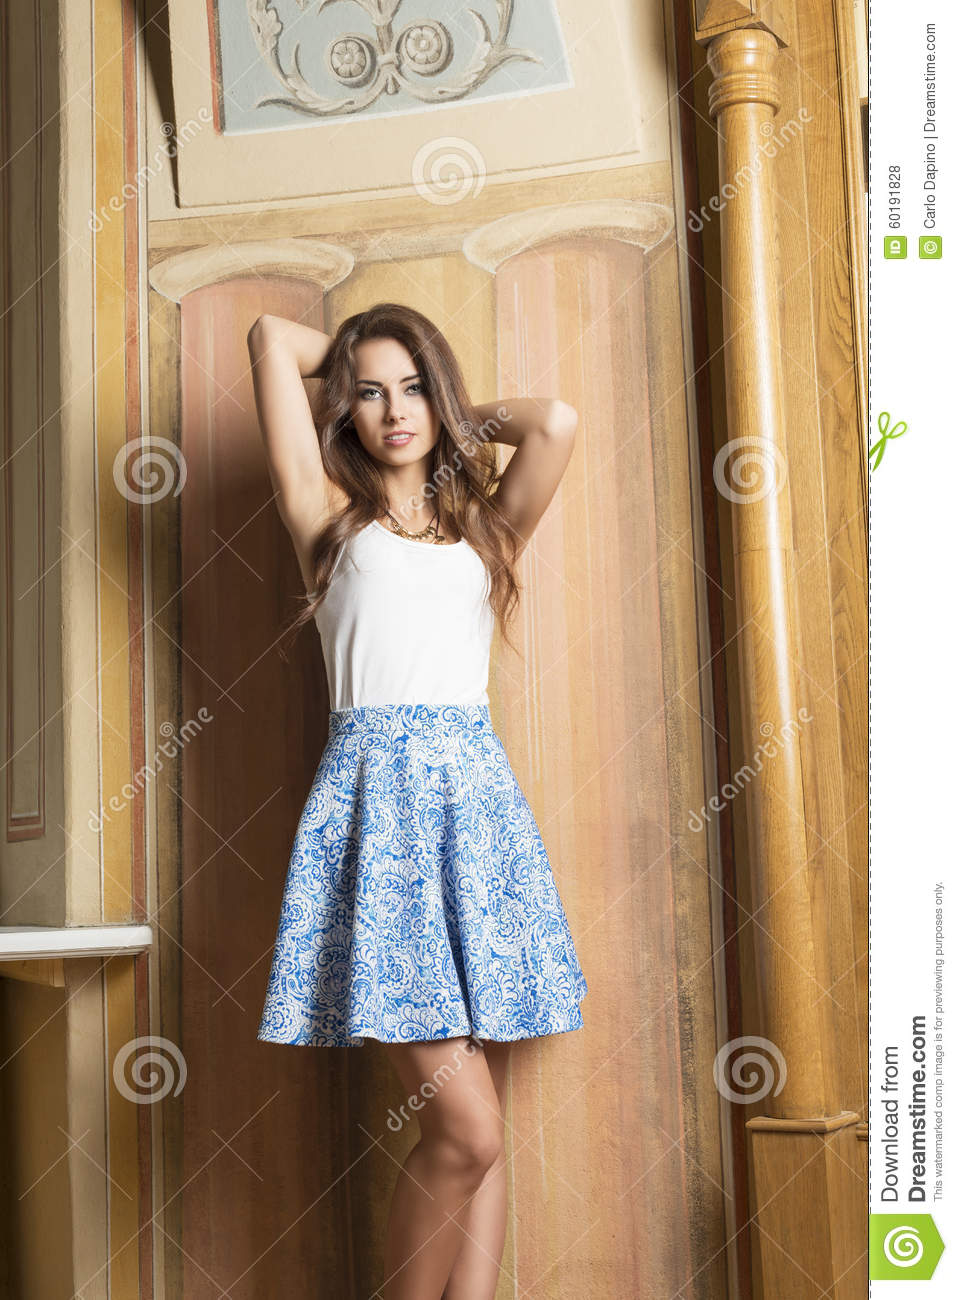 Elegant Girl In Fashion Pose Stock Photo Image 60191828